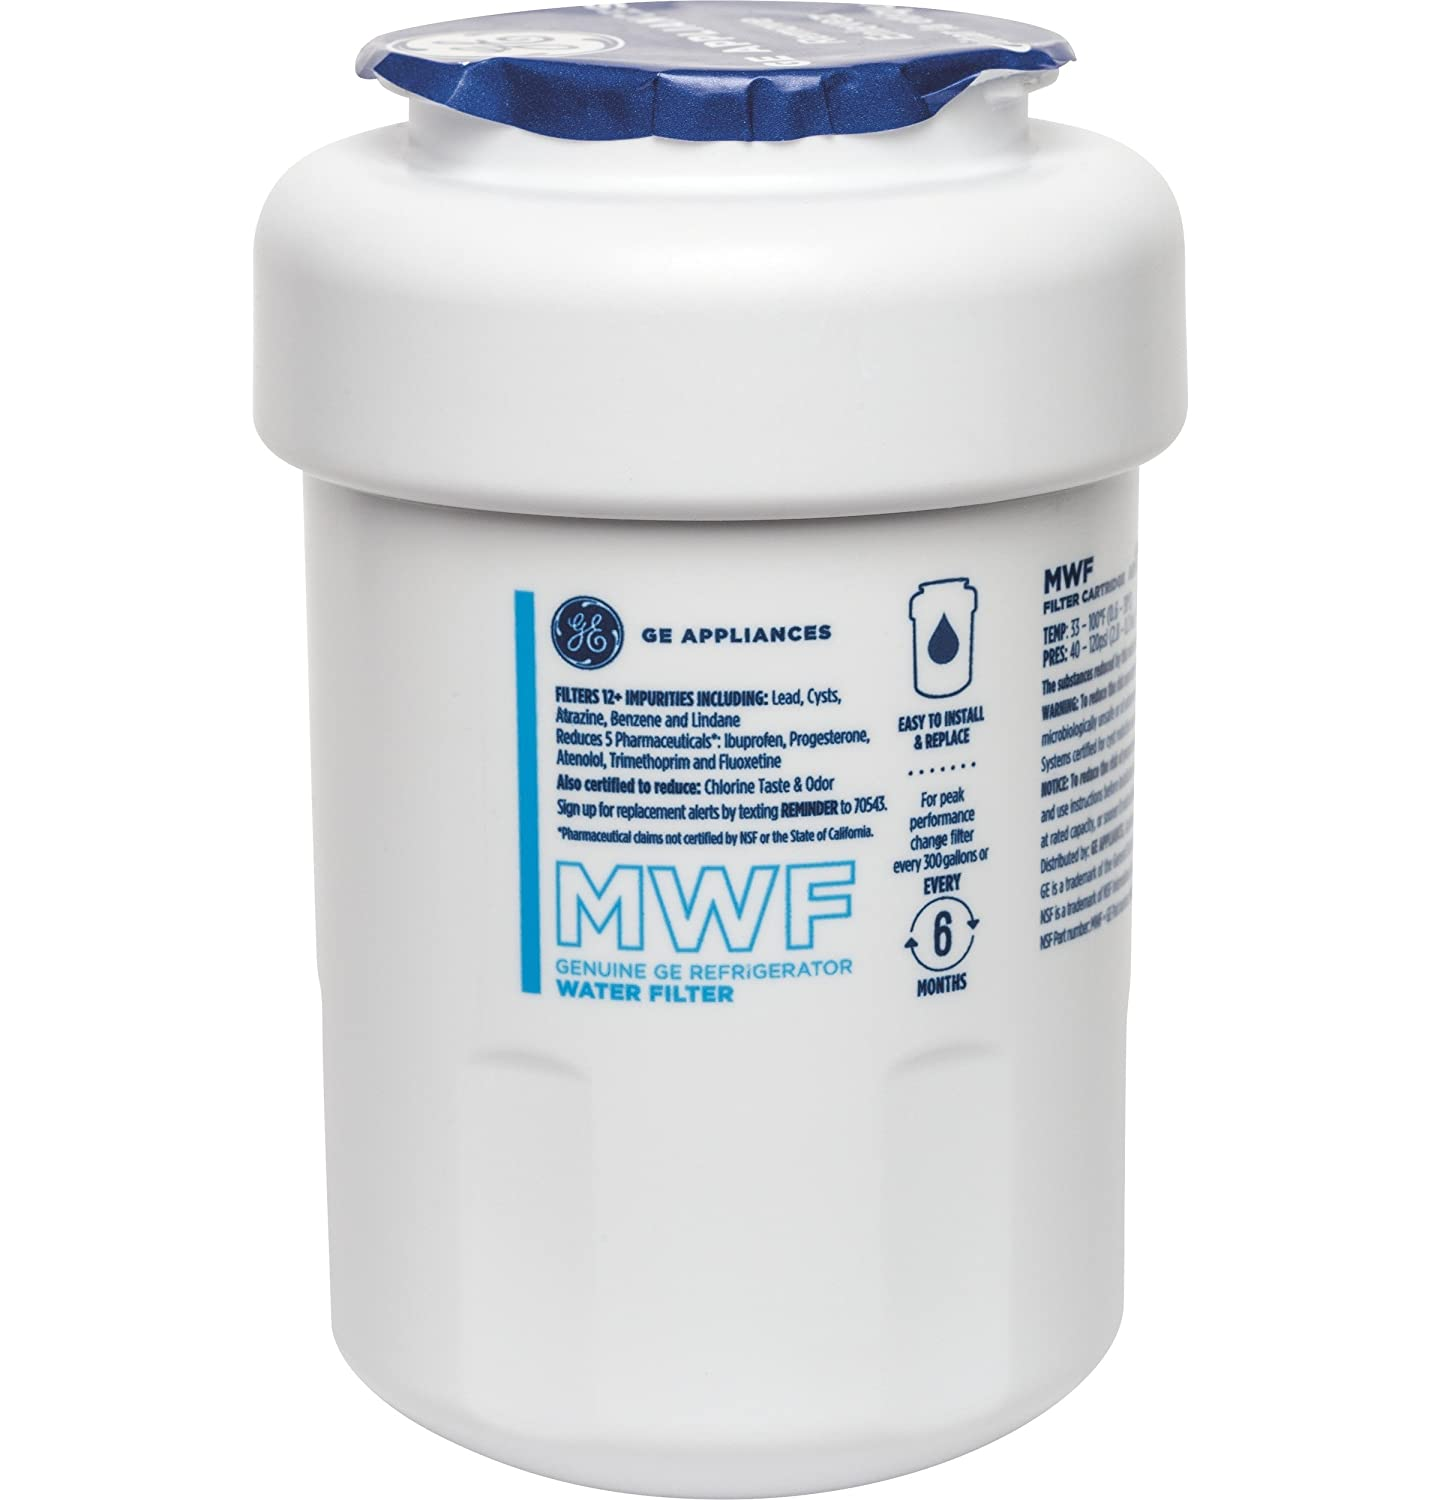 Amazon General Electric MWF Refrigerator Water Filter Home